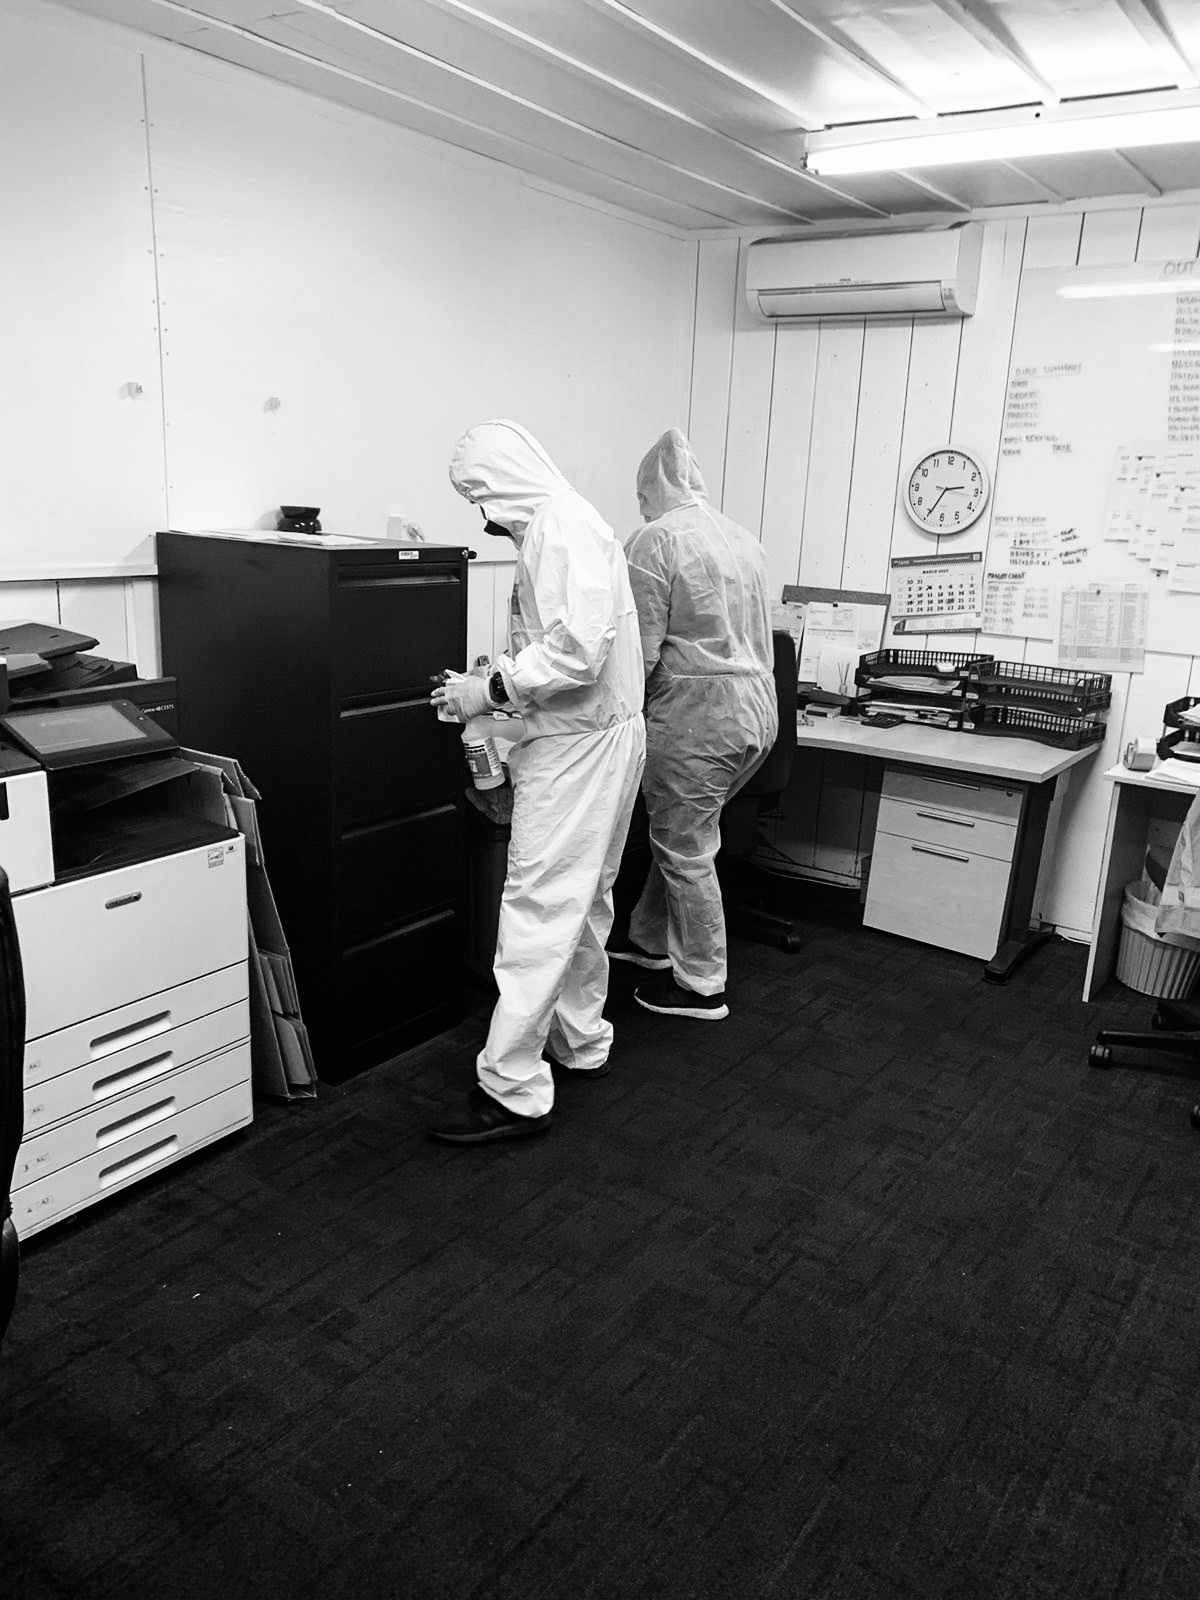 RAMS Cleaning Services team applying the Covid-19 Sanitisation Process at a workplace